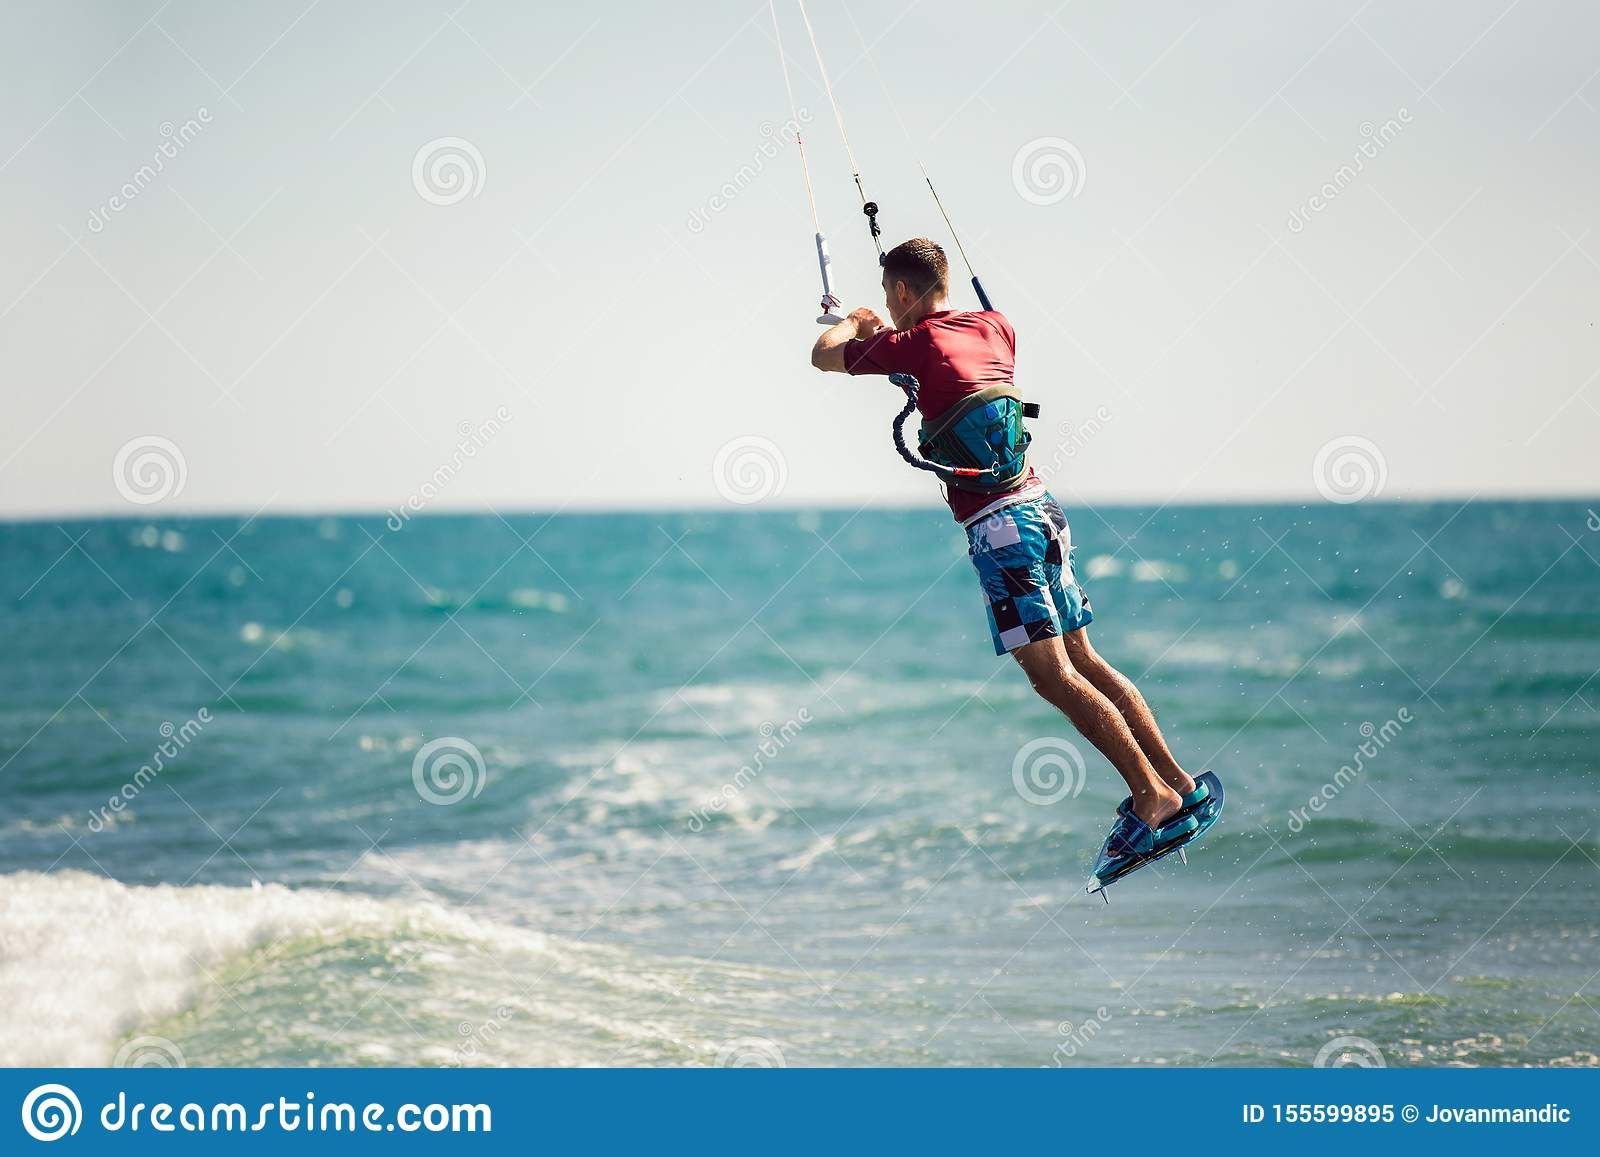 Kiter makes the difficult trick on a beautiful background. Kitesurfing Kiteboarding action photos man among waves